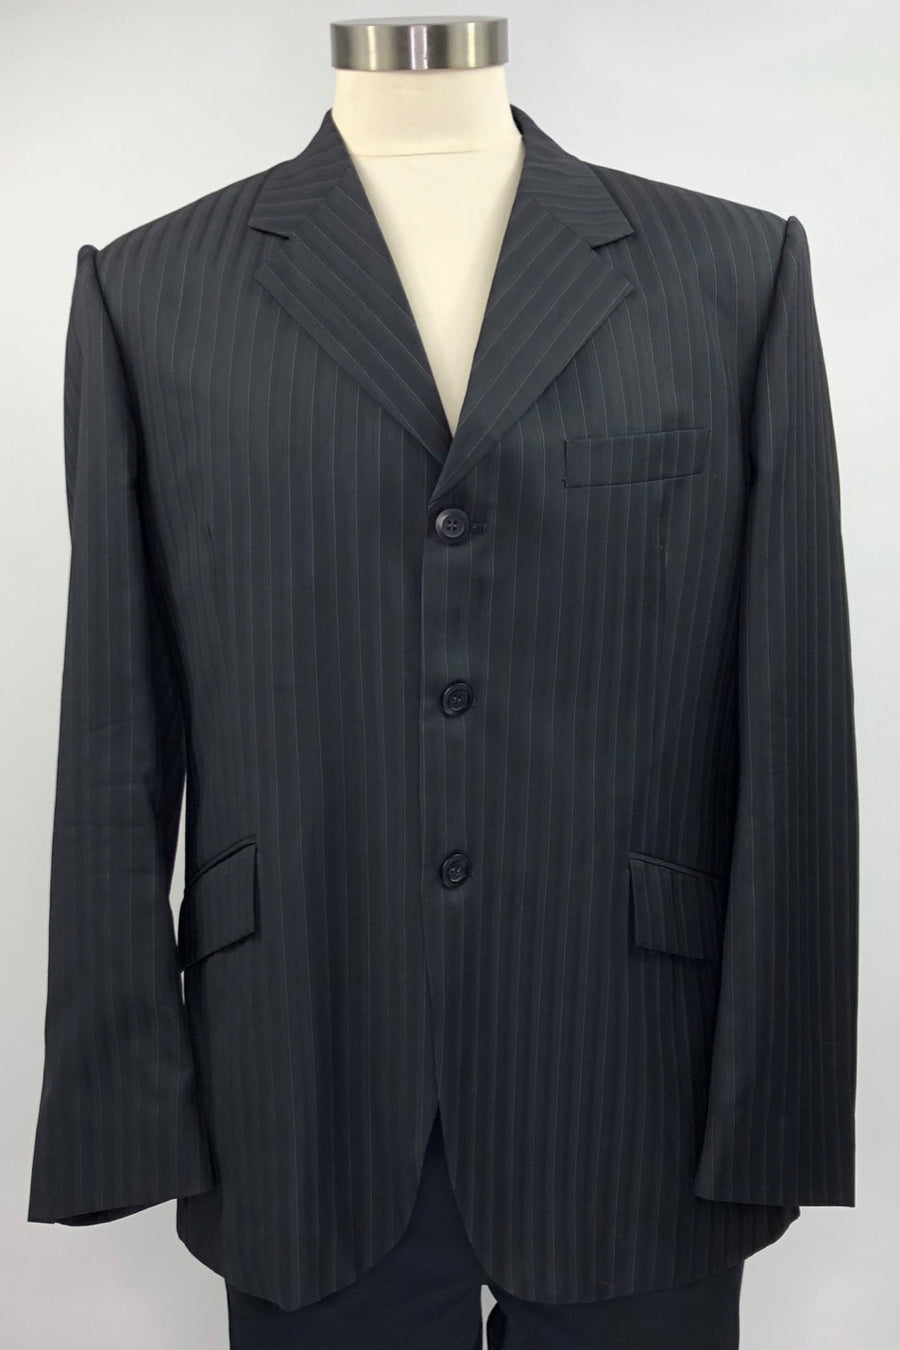 Grand Prix Hunt Coat in Black Pinstripe -Front View